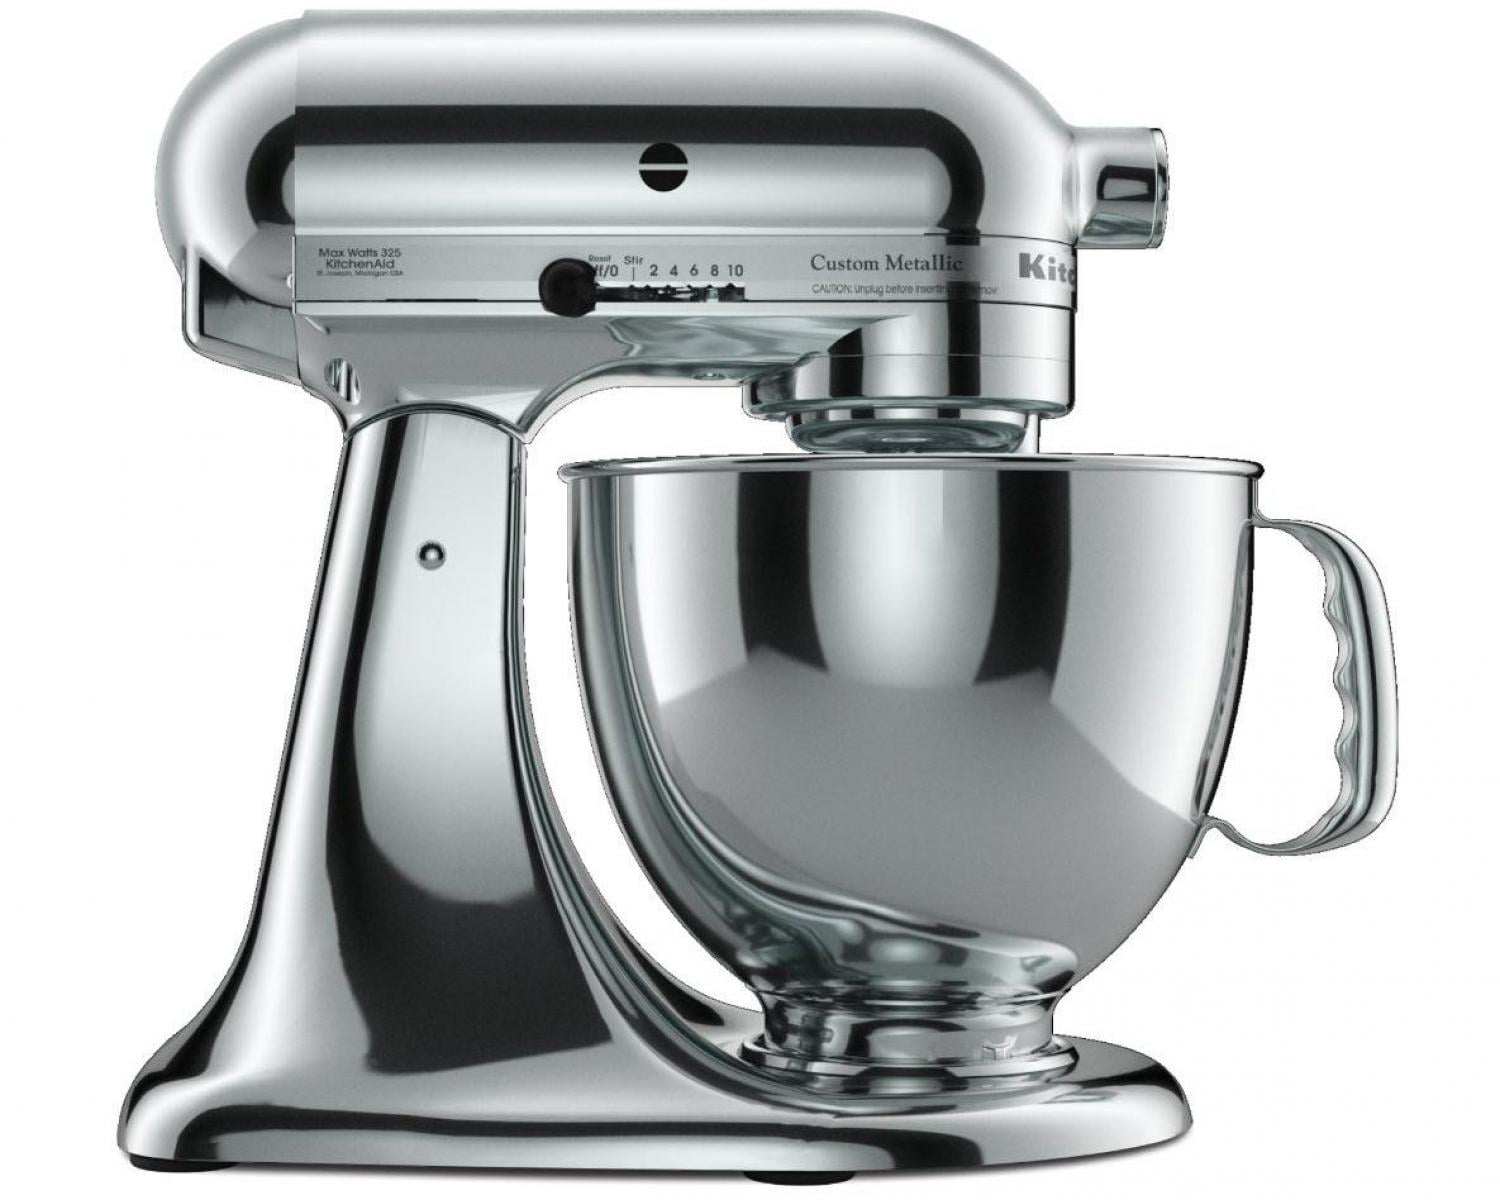 Charmant KitchenAid KSM152 Custom Metallic Mixer Walmart.com